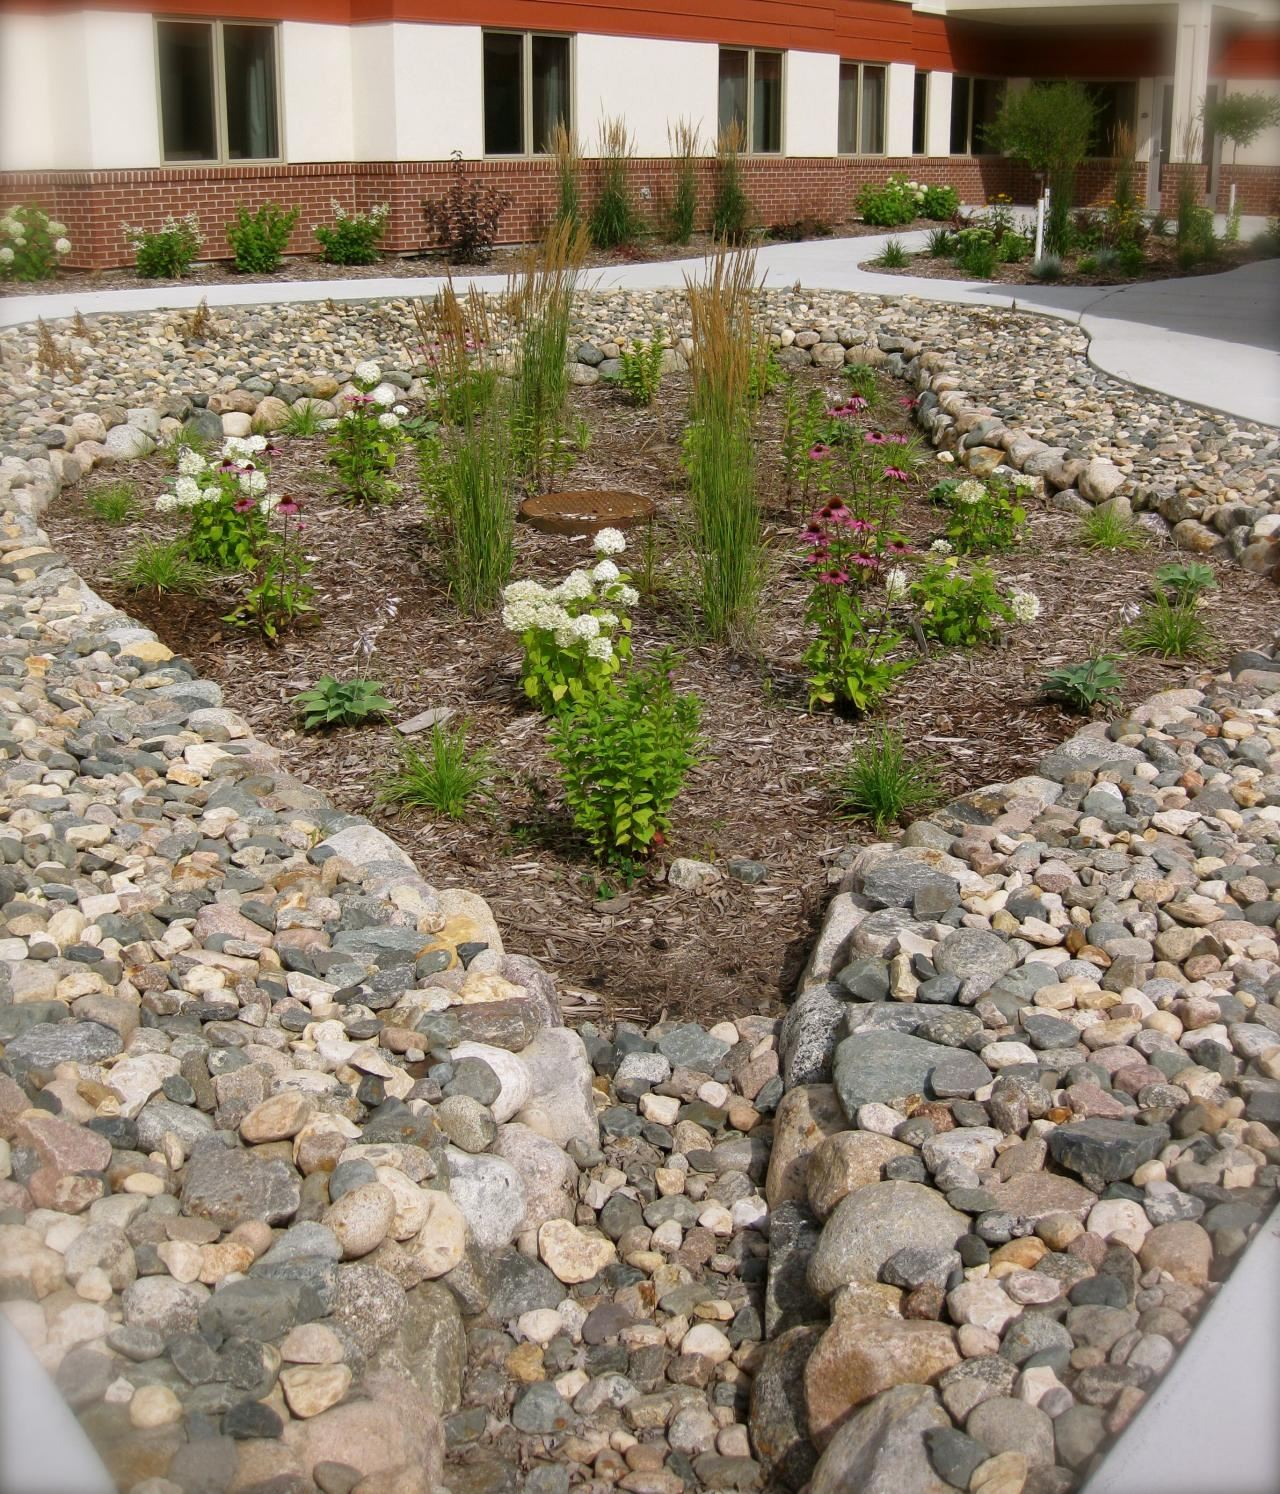 Stormwater Management2